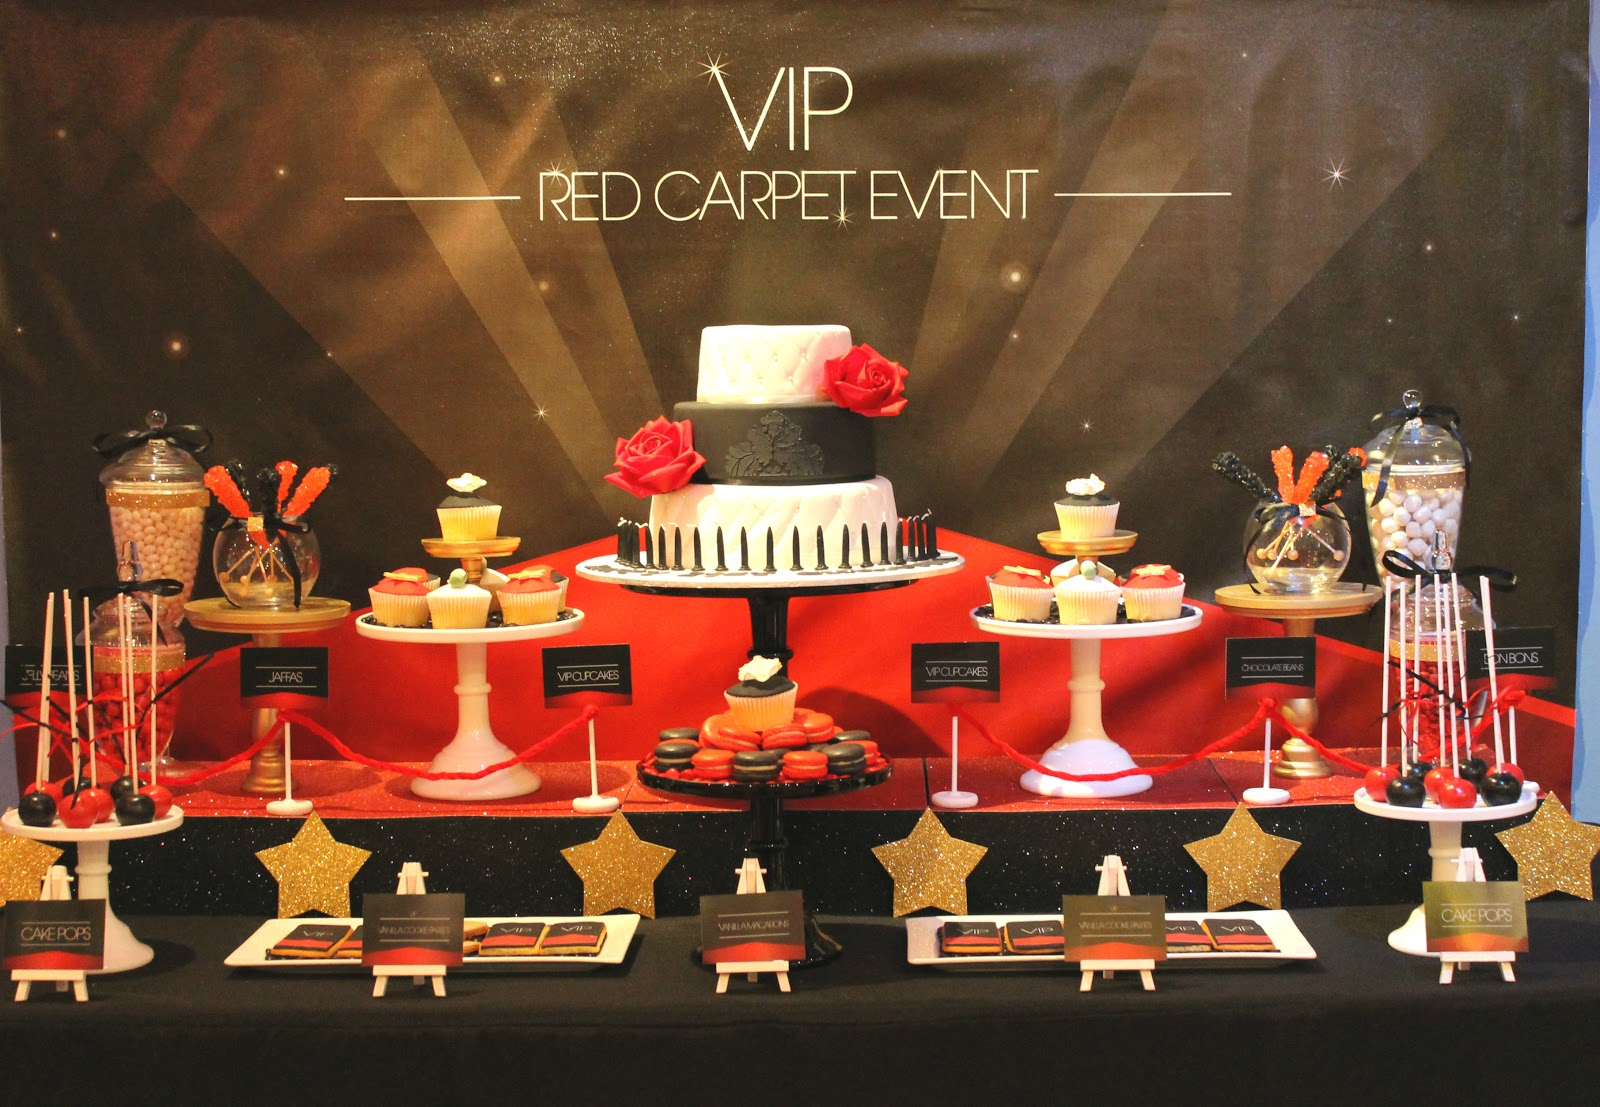 Events By Nat VIP Red Carpet Event Dessert Table